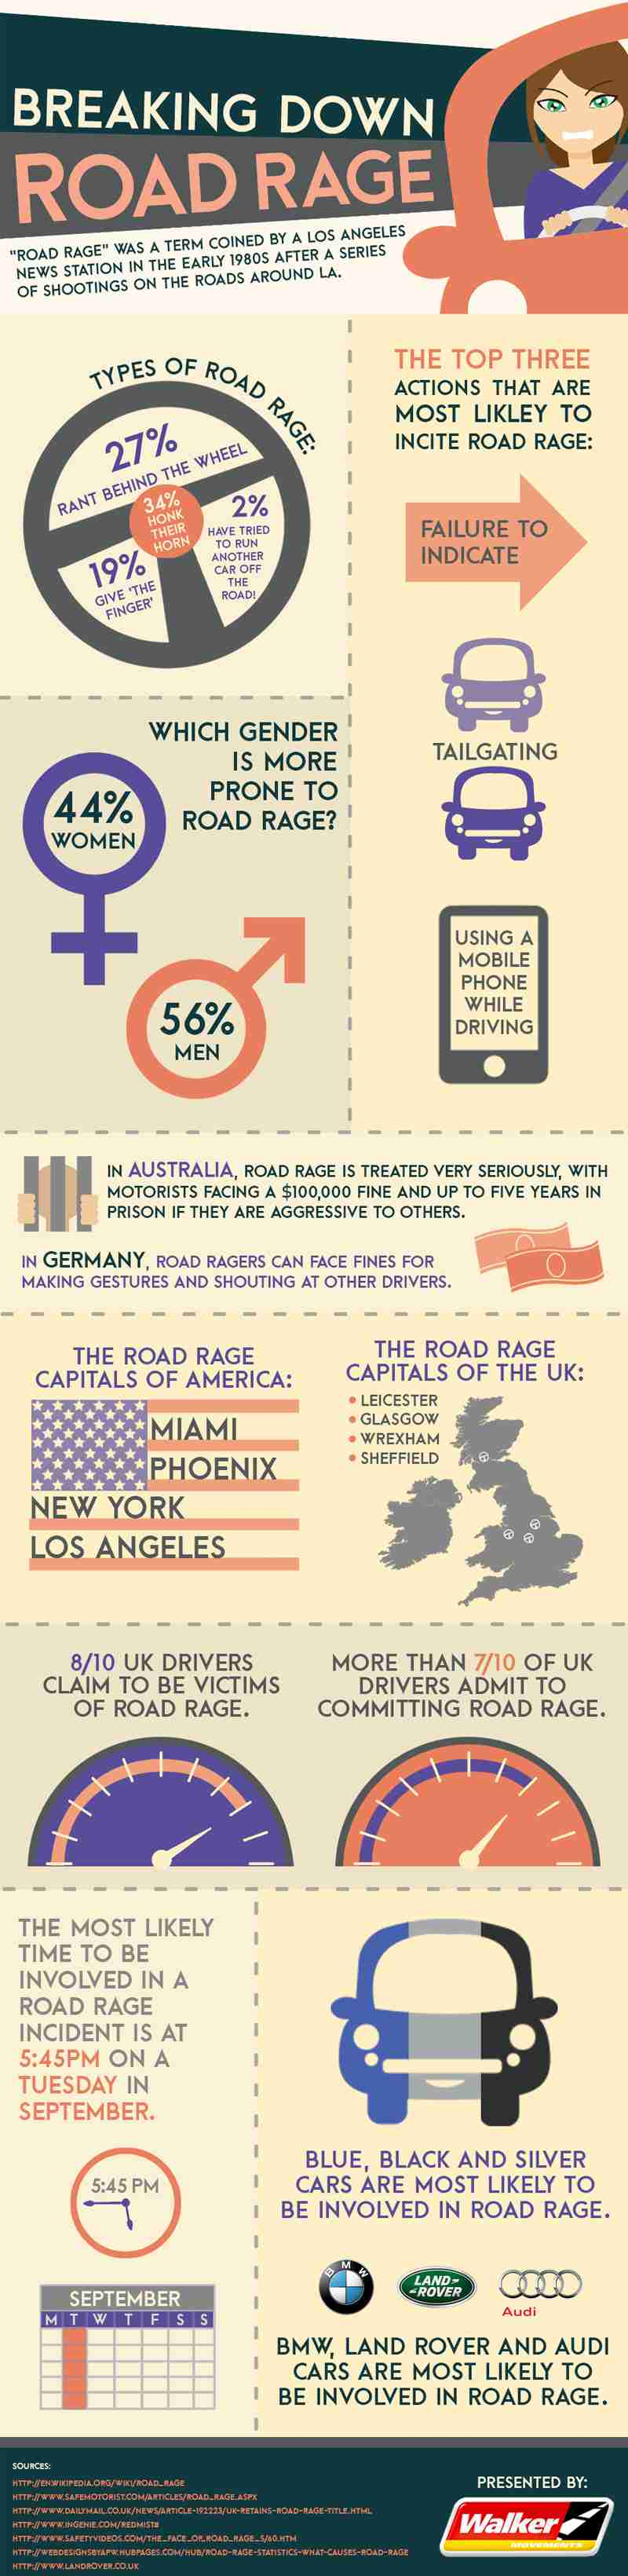 Walker Movements - Breaking Down Road Rage - Infographic